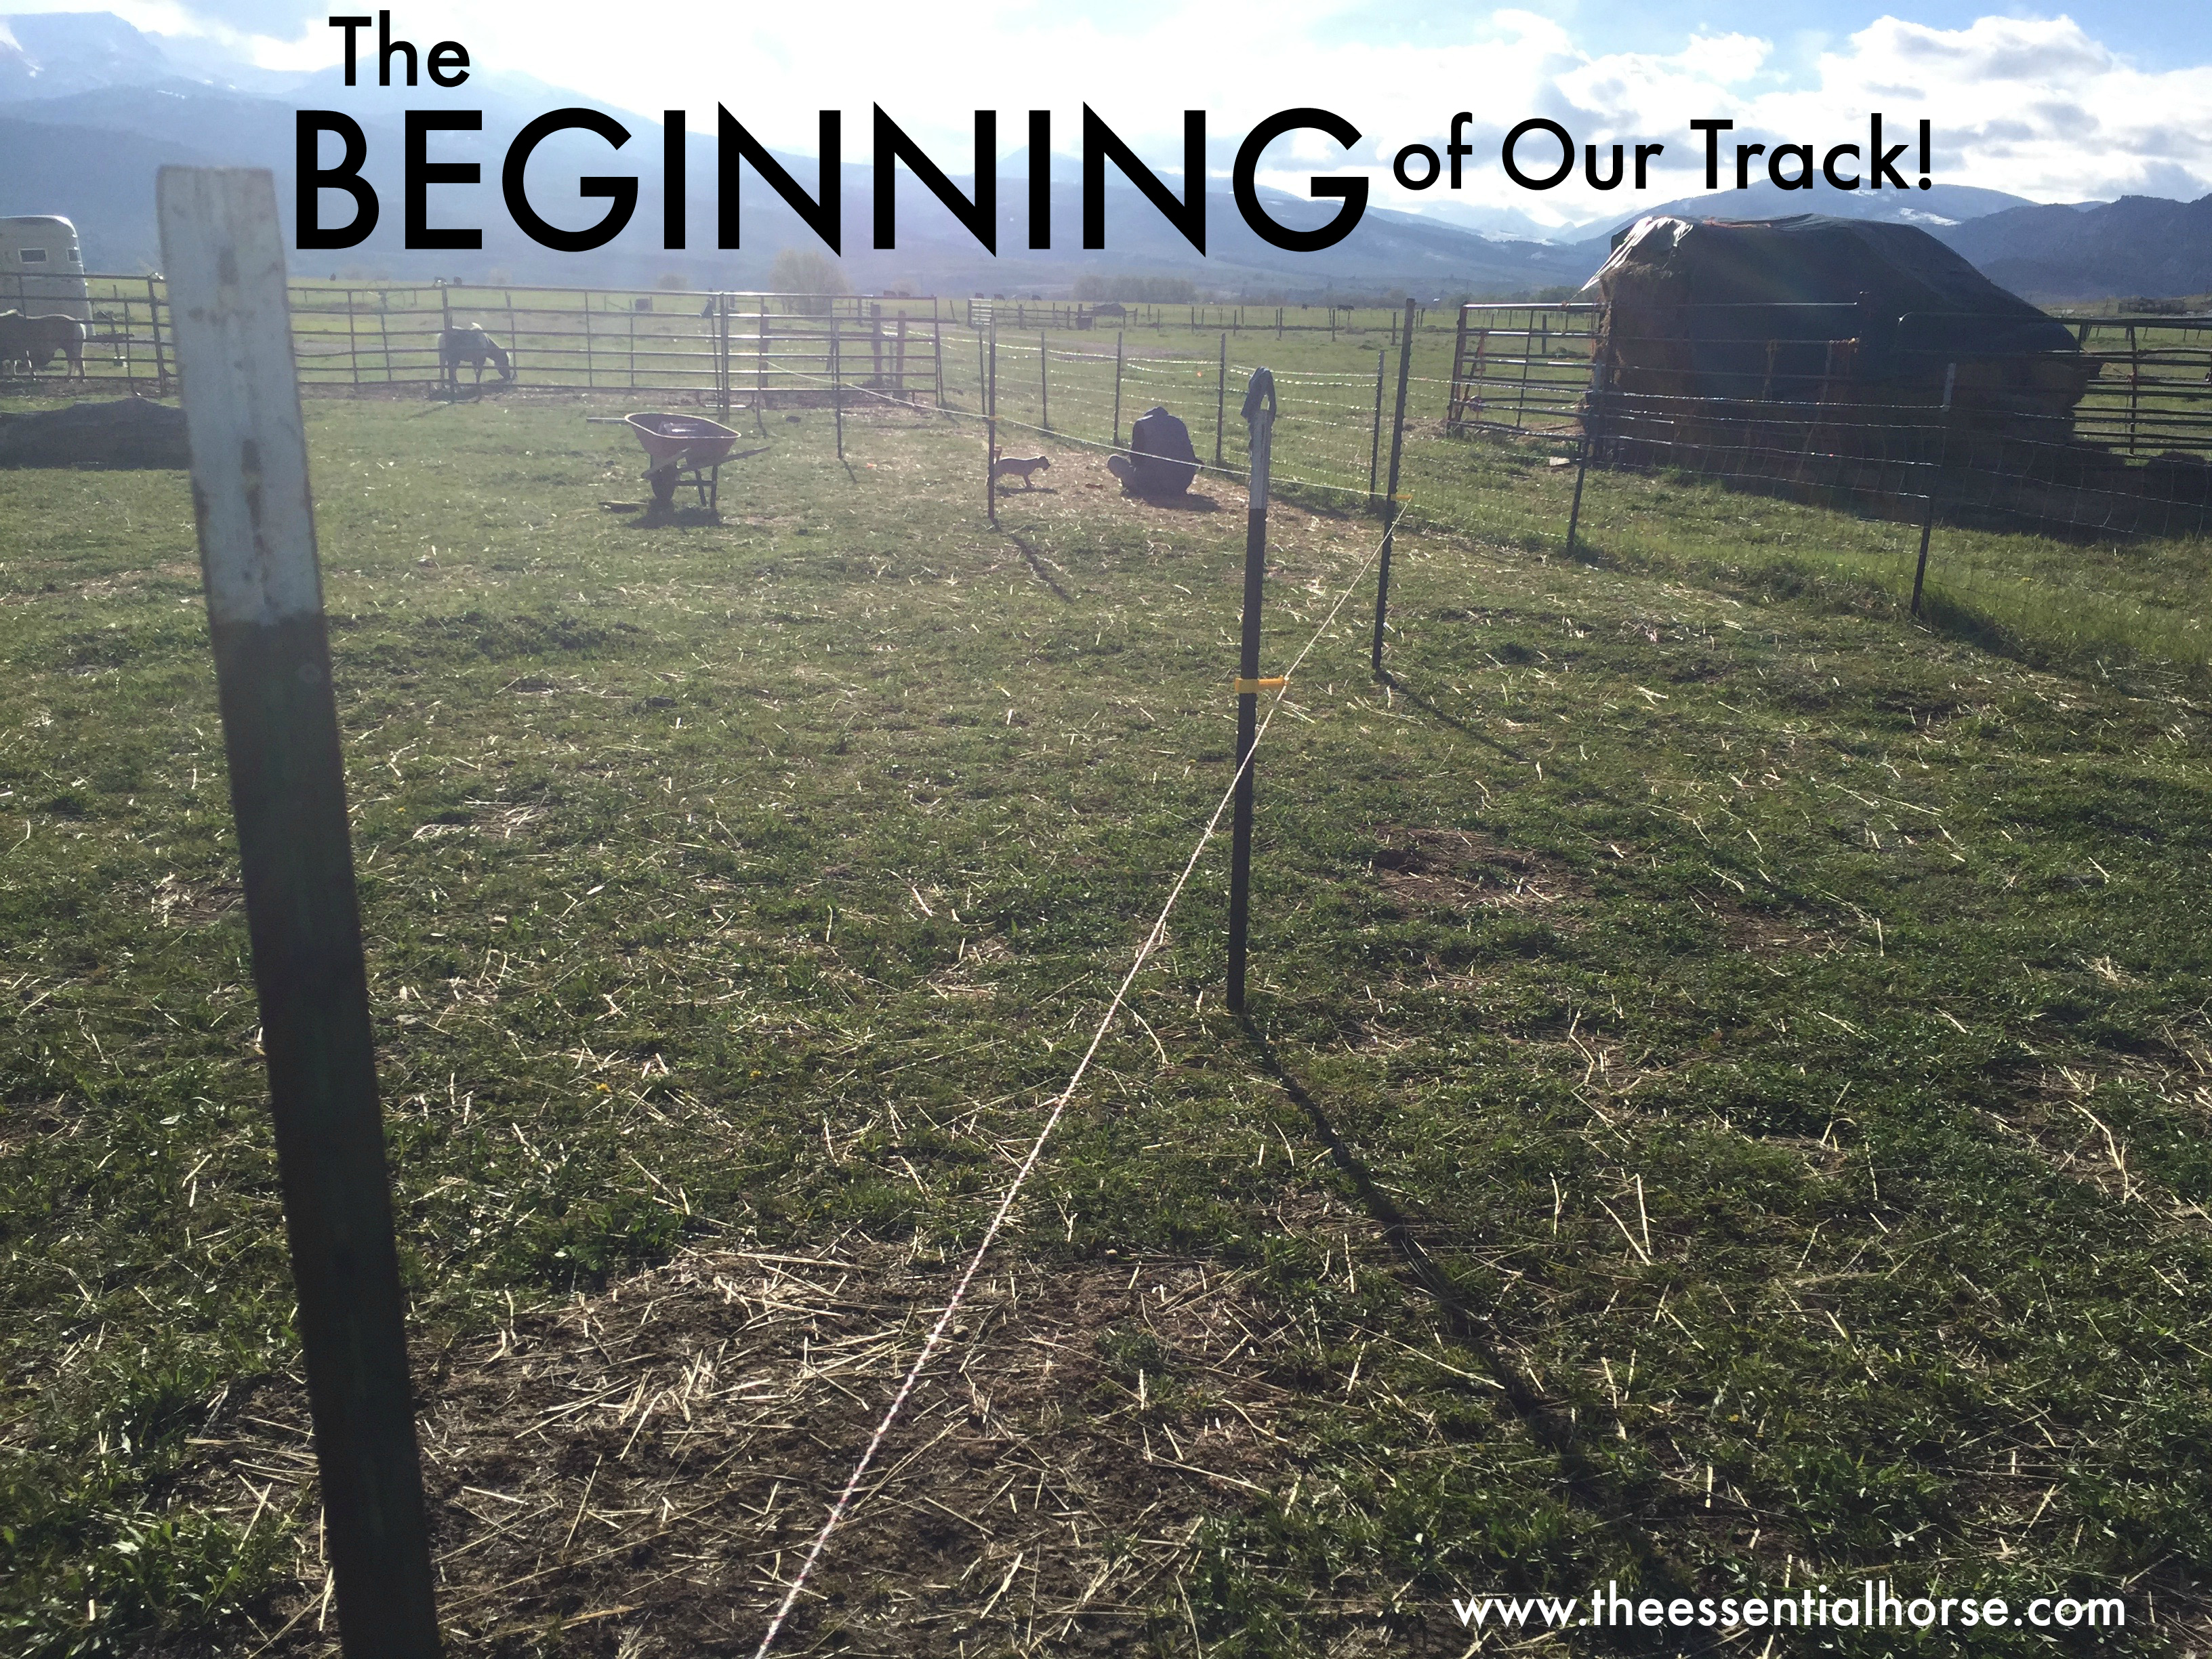 The Beginning of our track!